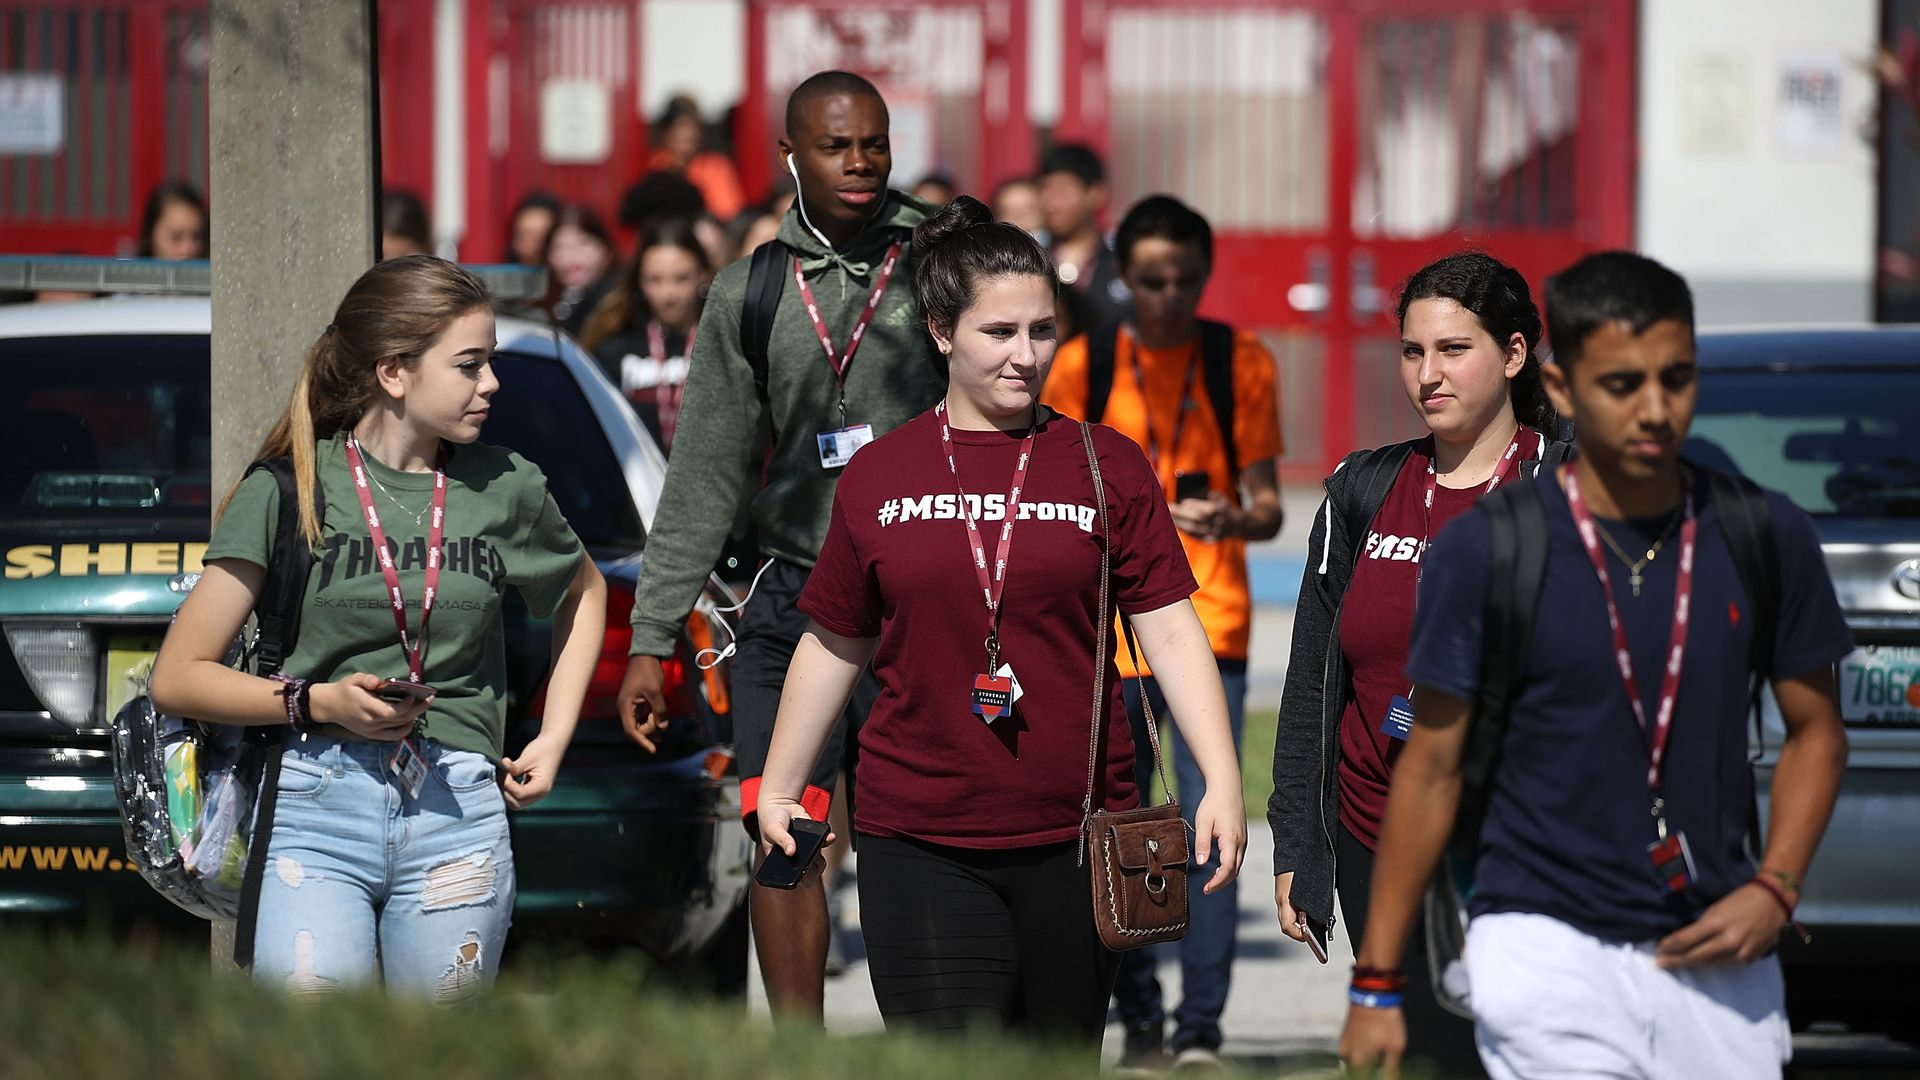 Students walk out from Stoneman high school